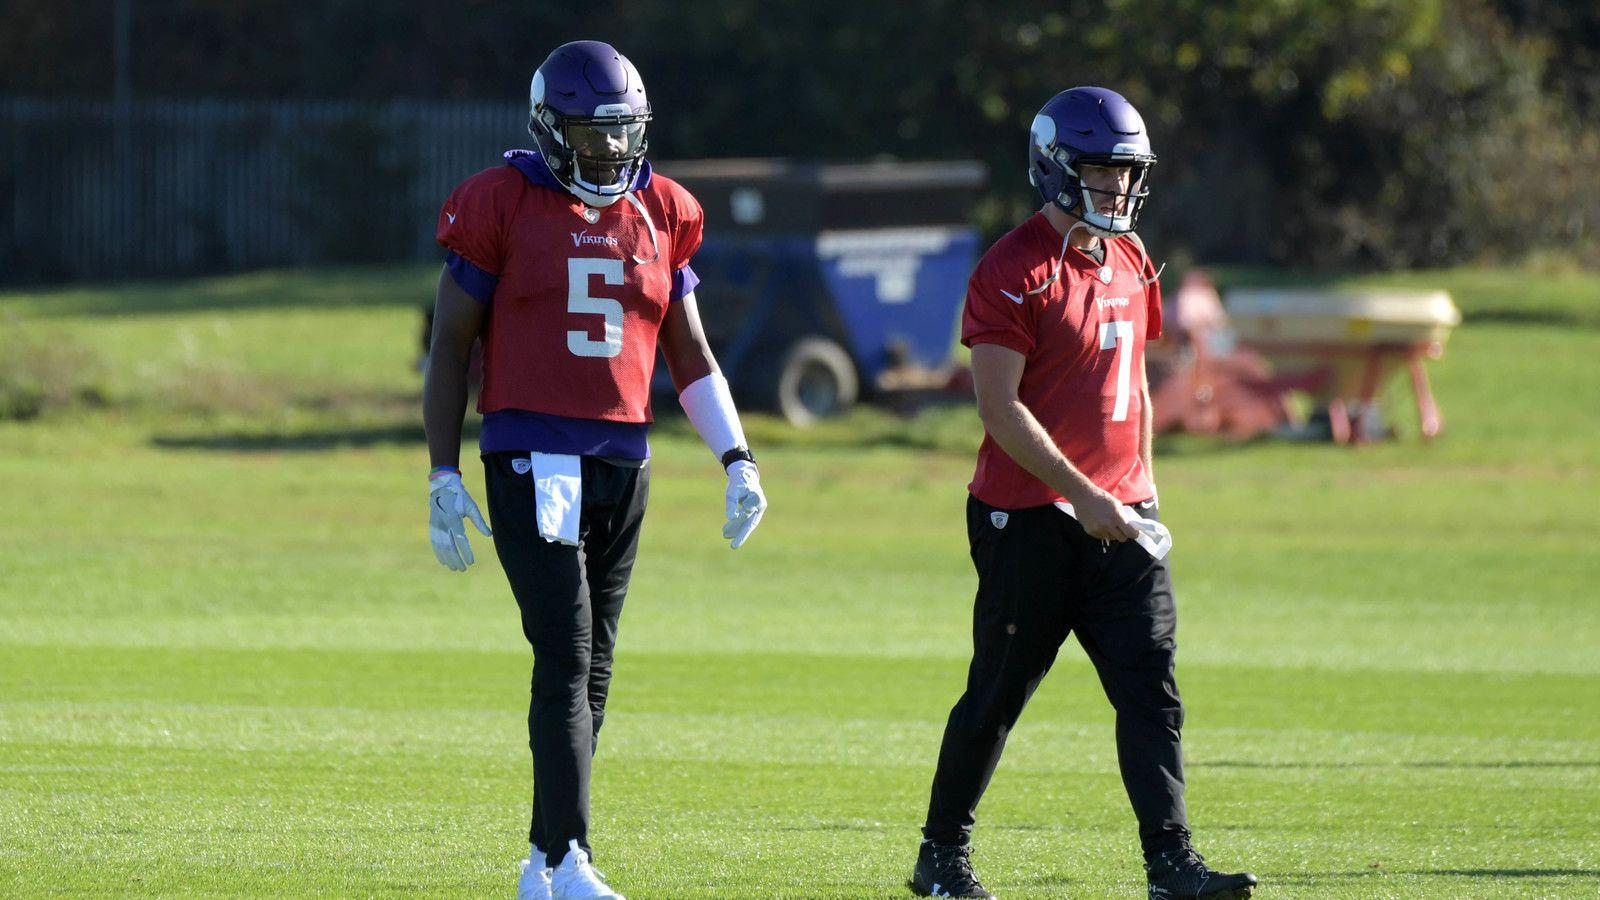 Teddy Bridgewater may backup Case Keenum this week | Yardbarker.com